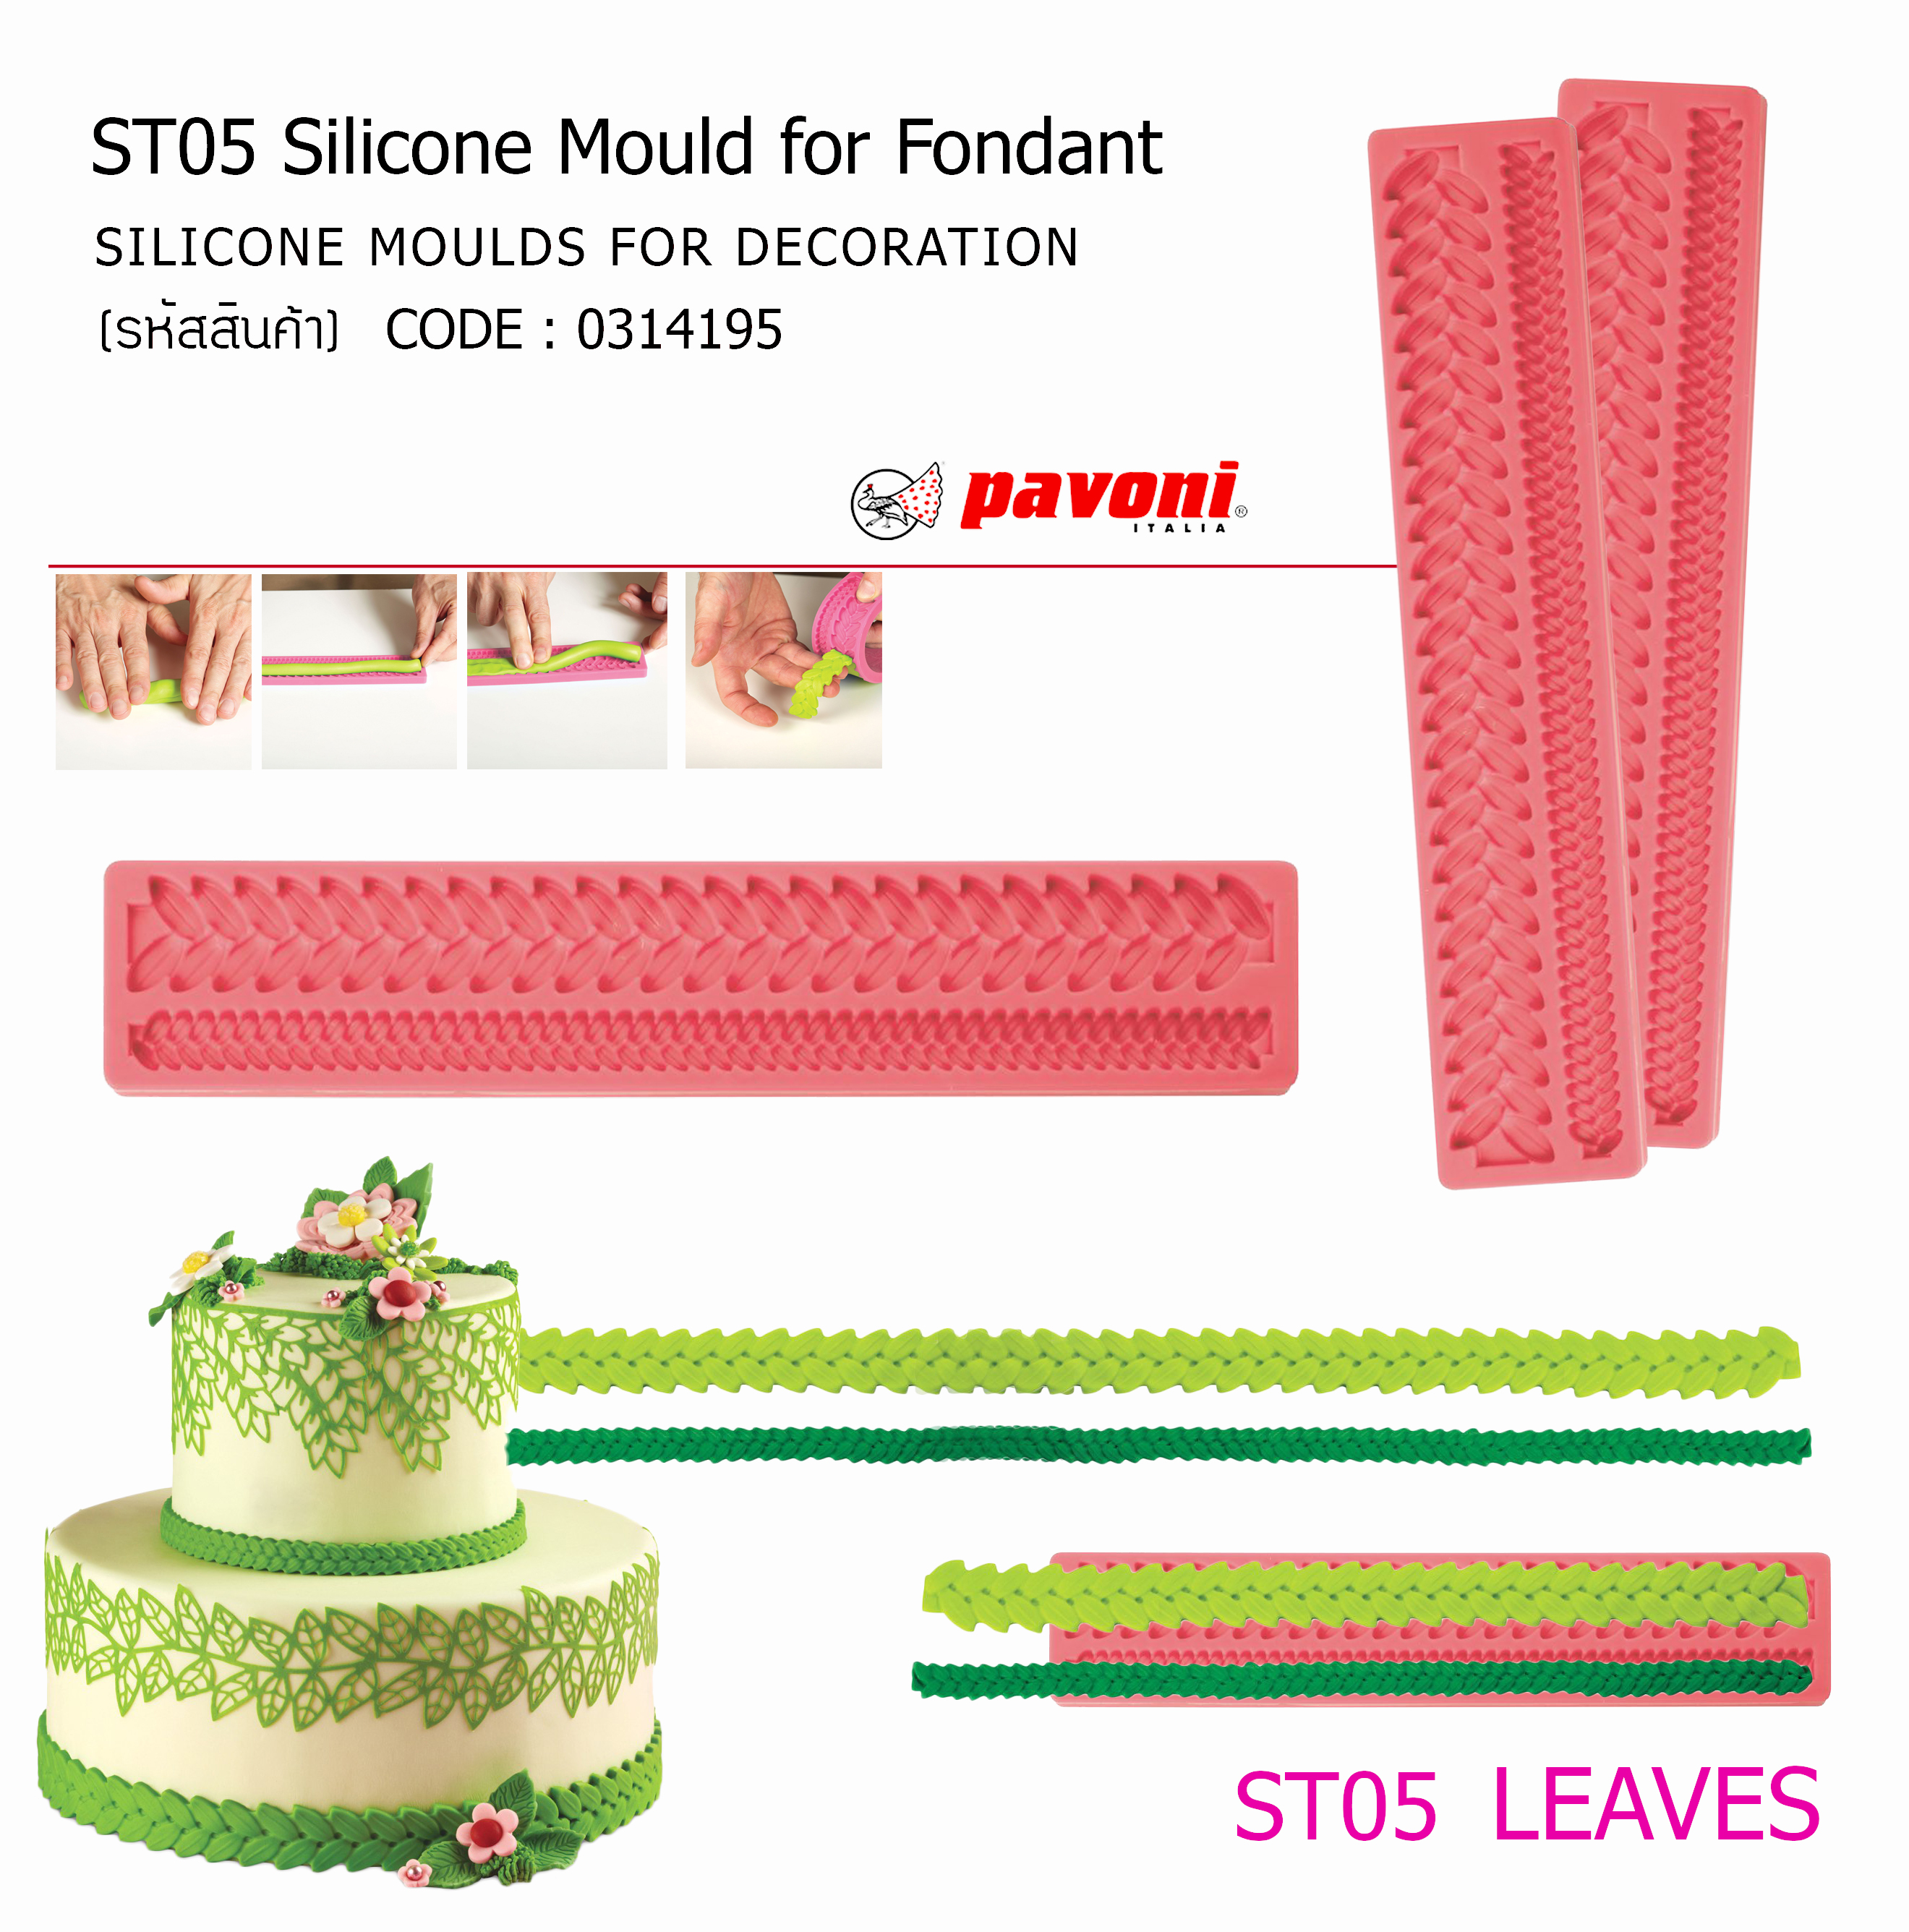 ST05 Silicone Mould for Fondant Leaves